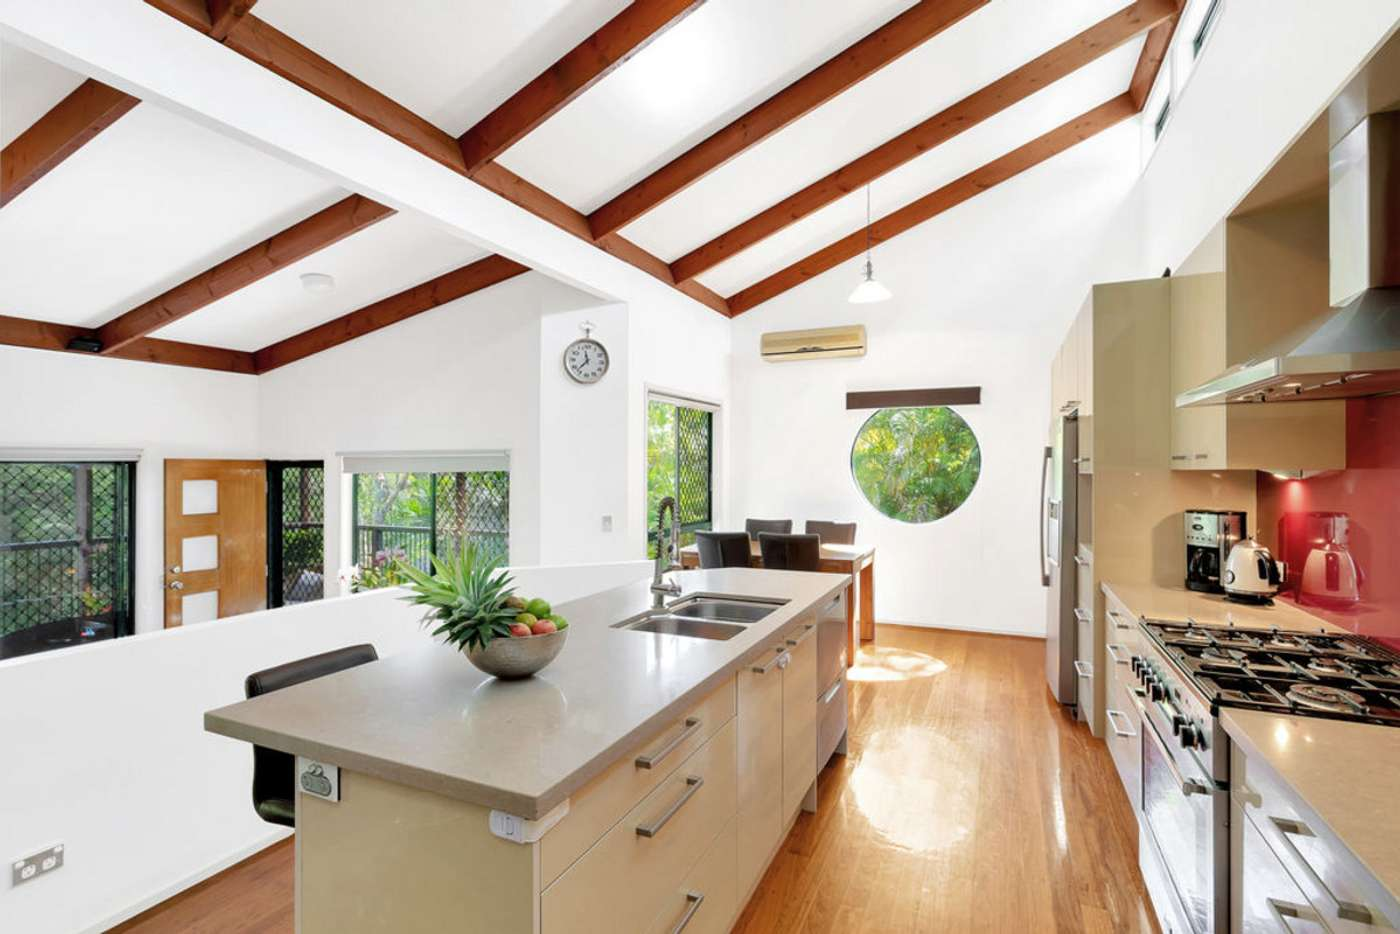 Sixth view of Homely house listing, 18 Stonehaven Place, Highland Park QLD 4211